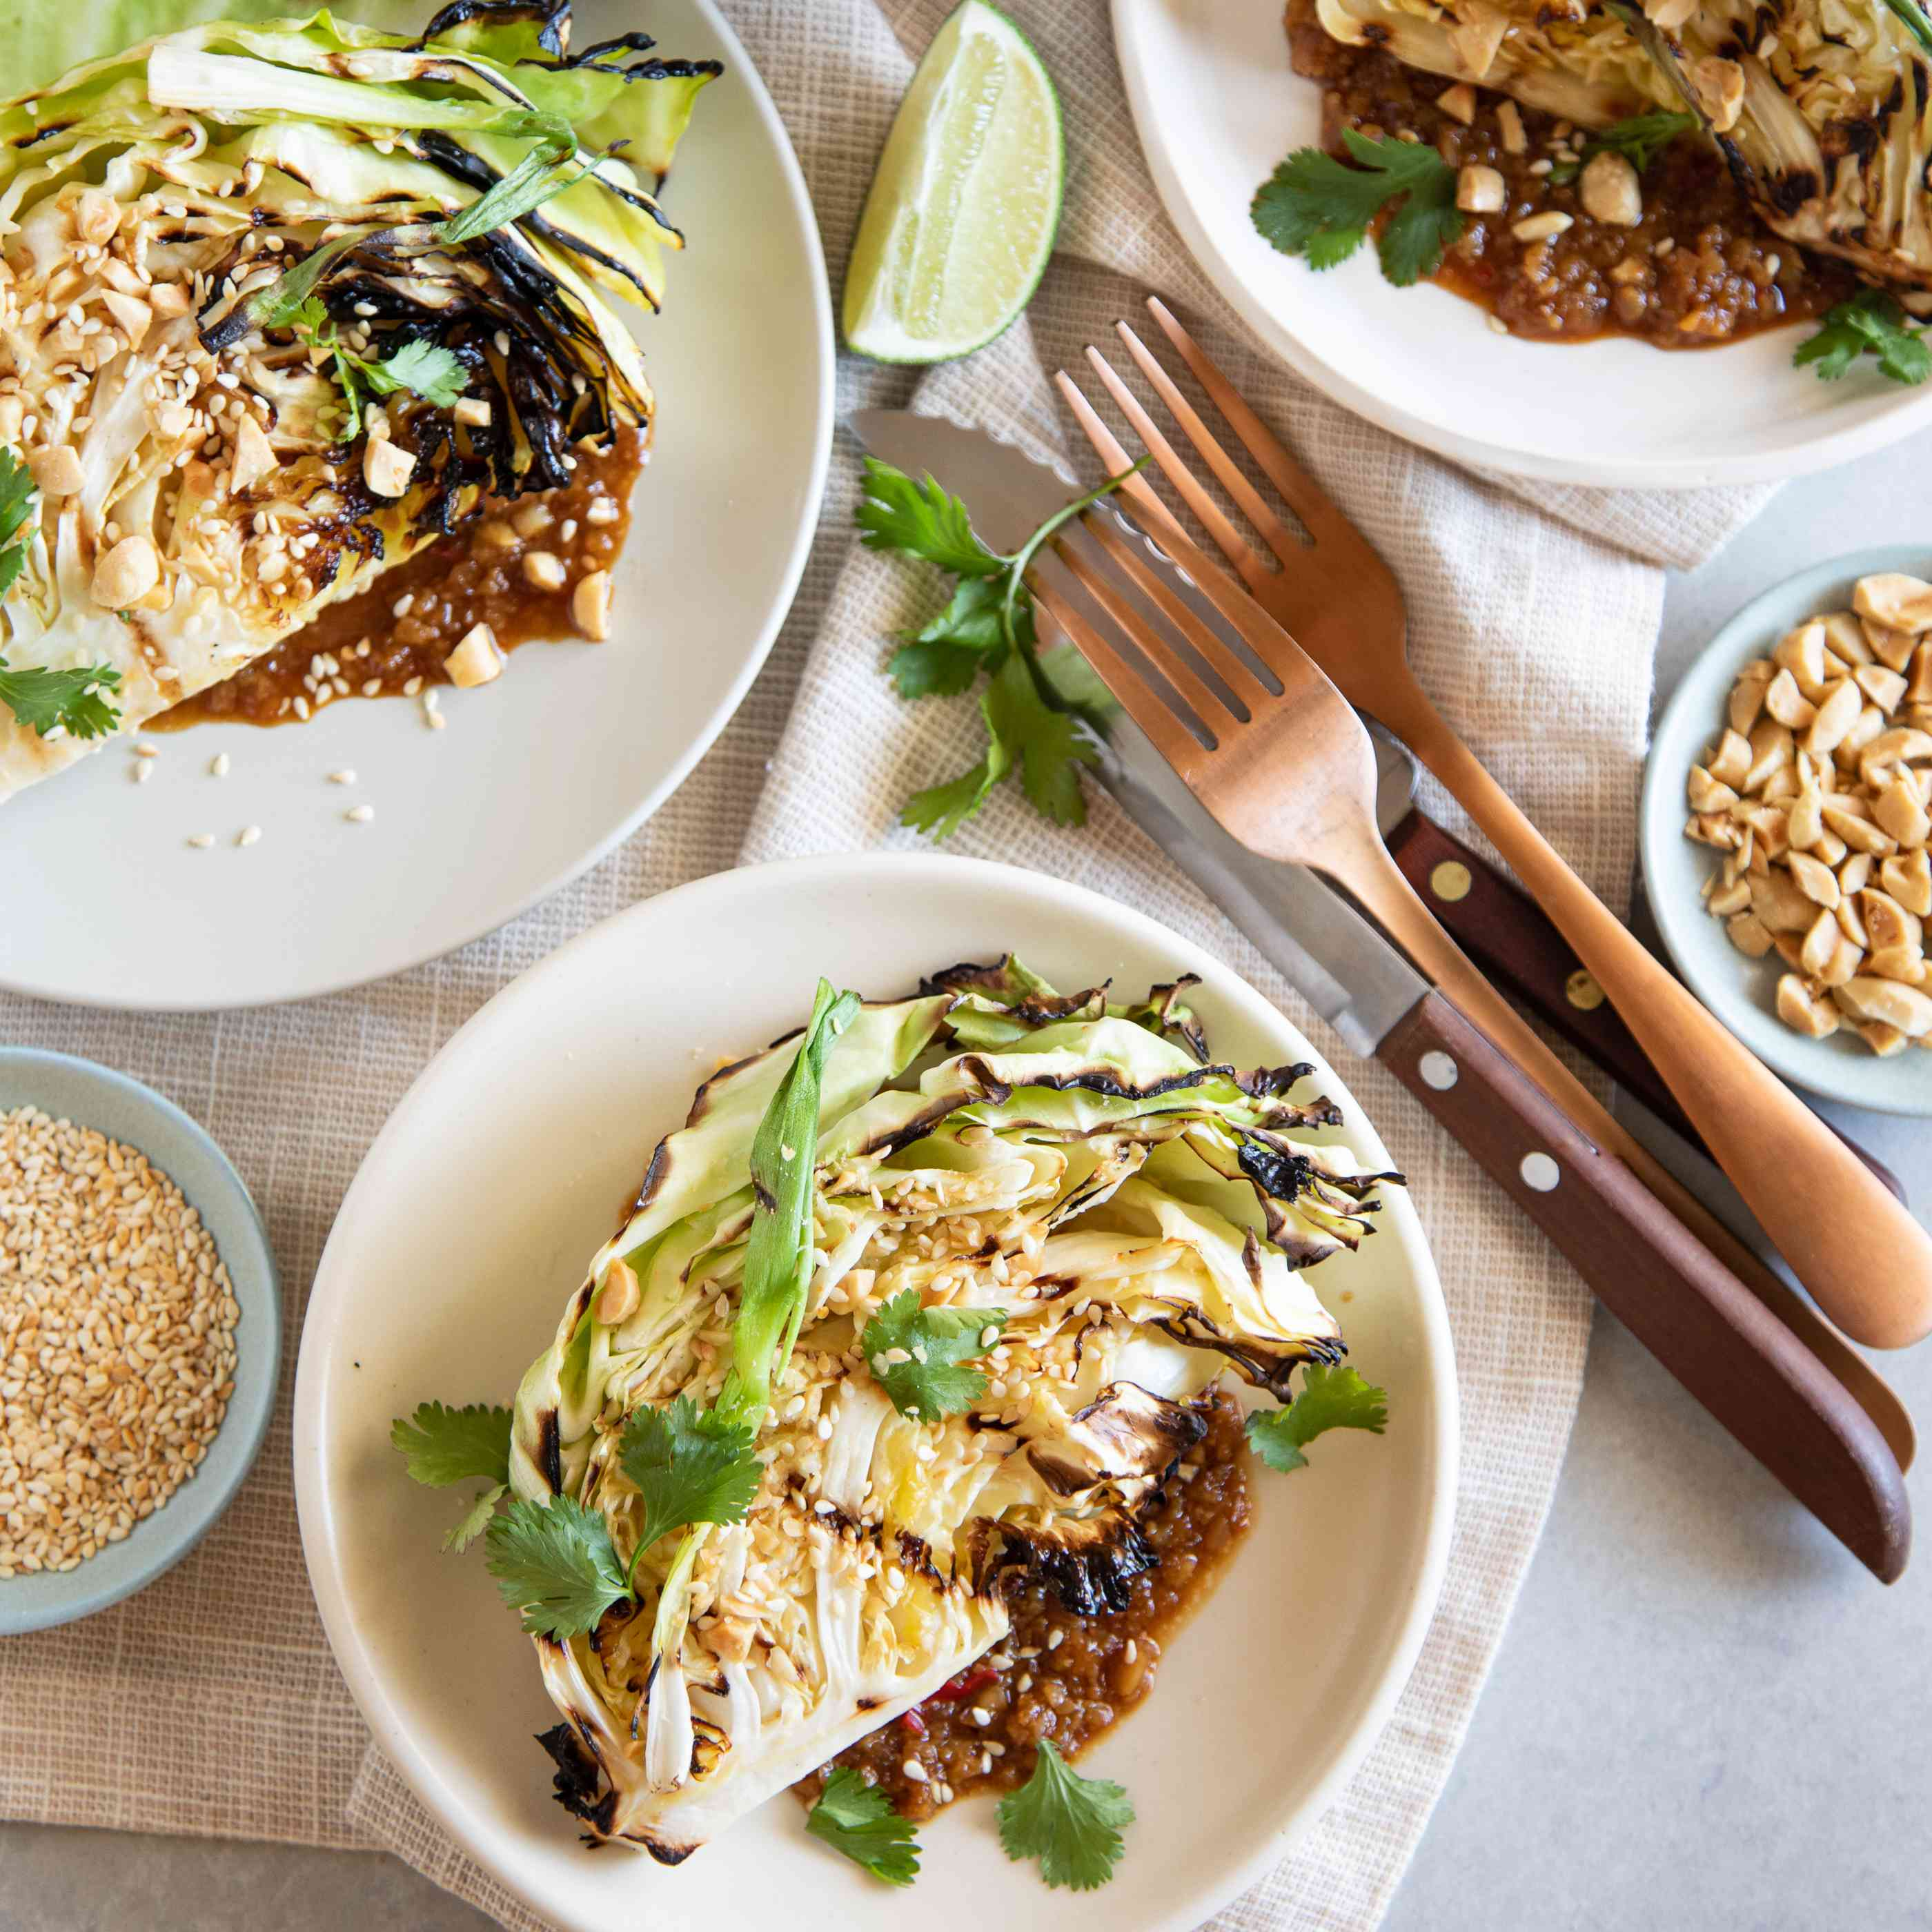 Grilled cabbage wedges with peanut sauce on a plate with utensils and toppings set around it.